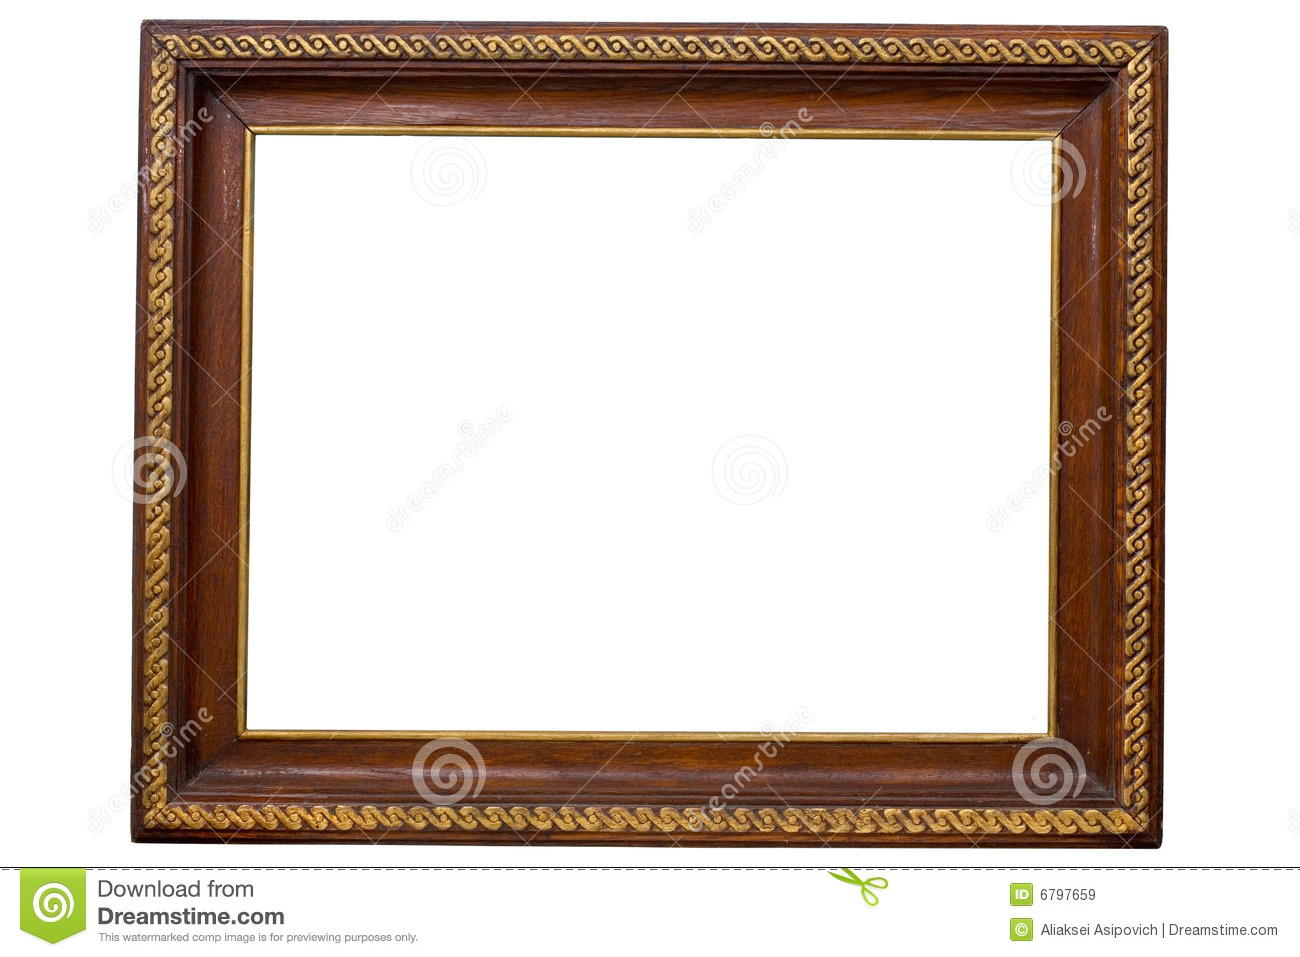 Antique wooden frame stock image. Image of page, painting - 6797659